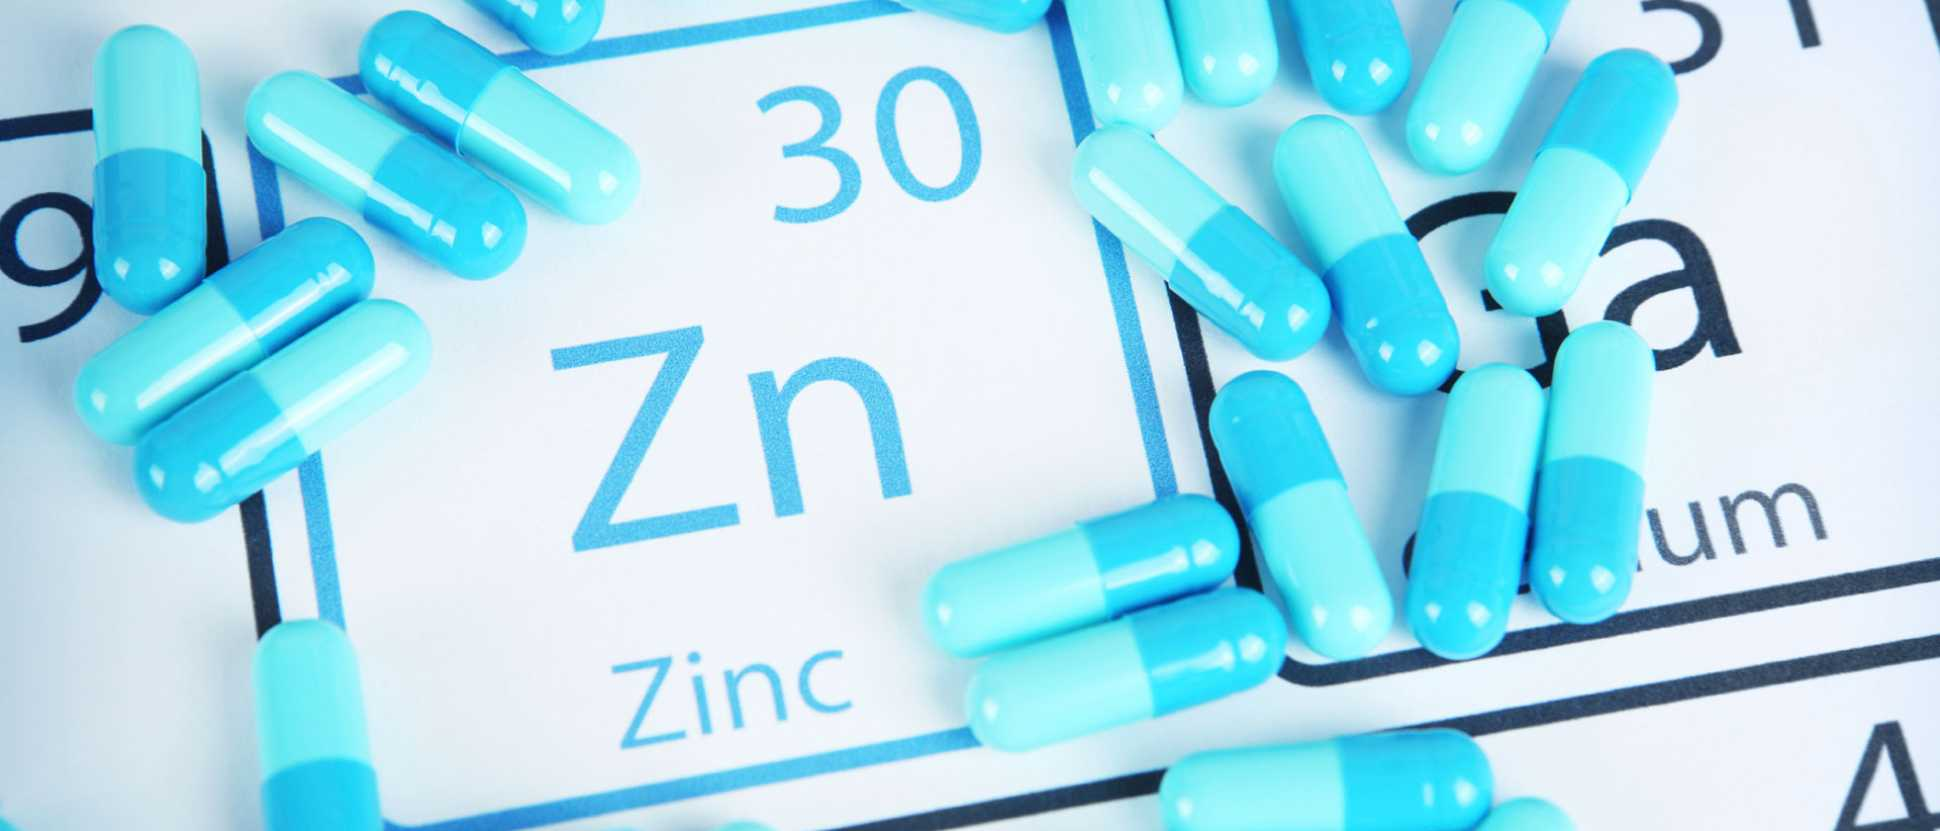 160428-Zinc-deficiency-may-contribute-to-increased-inflammation-among-HIV-positive-peoplejpg